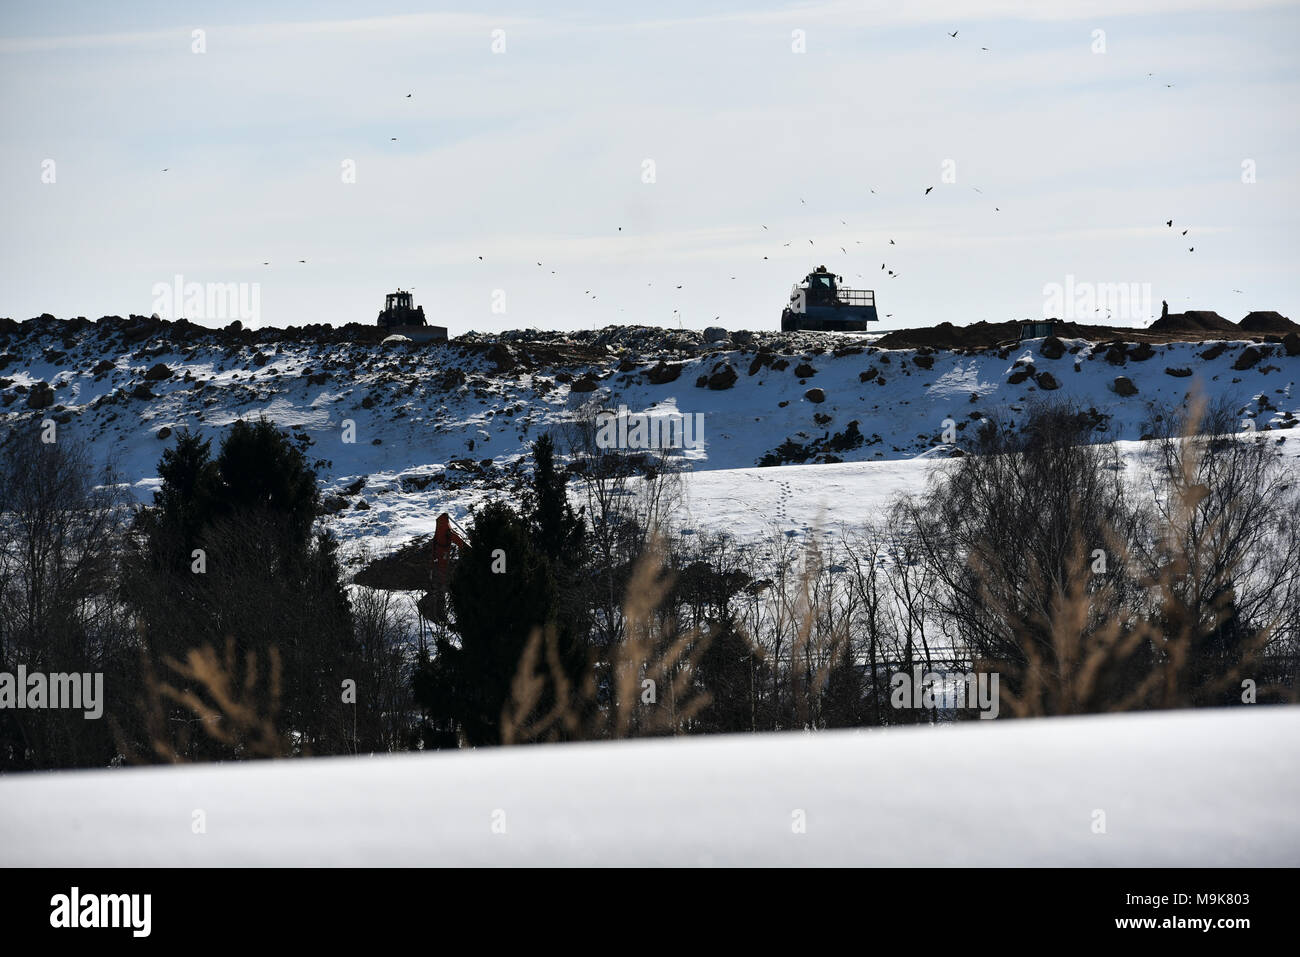 Moscow Oblast, Russia. 25 March, 2018. View of the Yadrovo landfill site in Moscow Oblast, Russia. - Stock Image